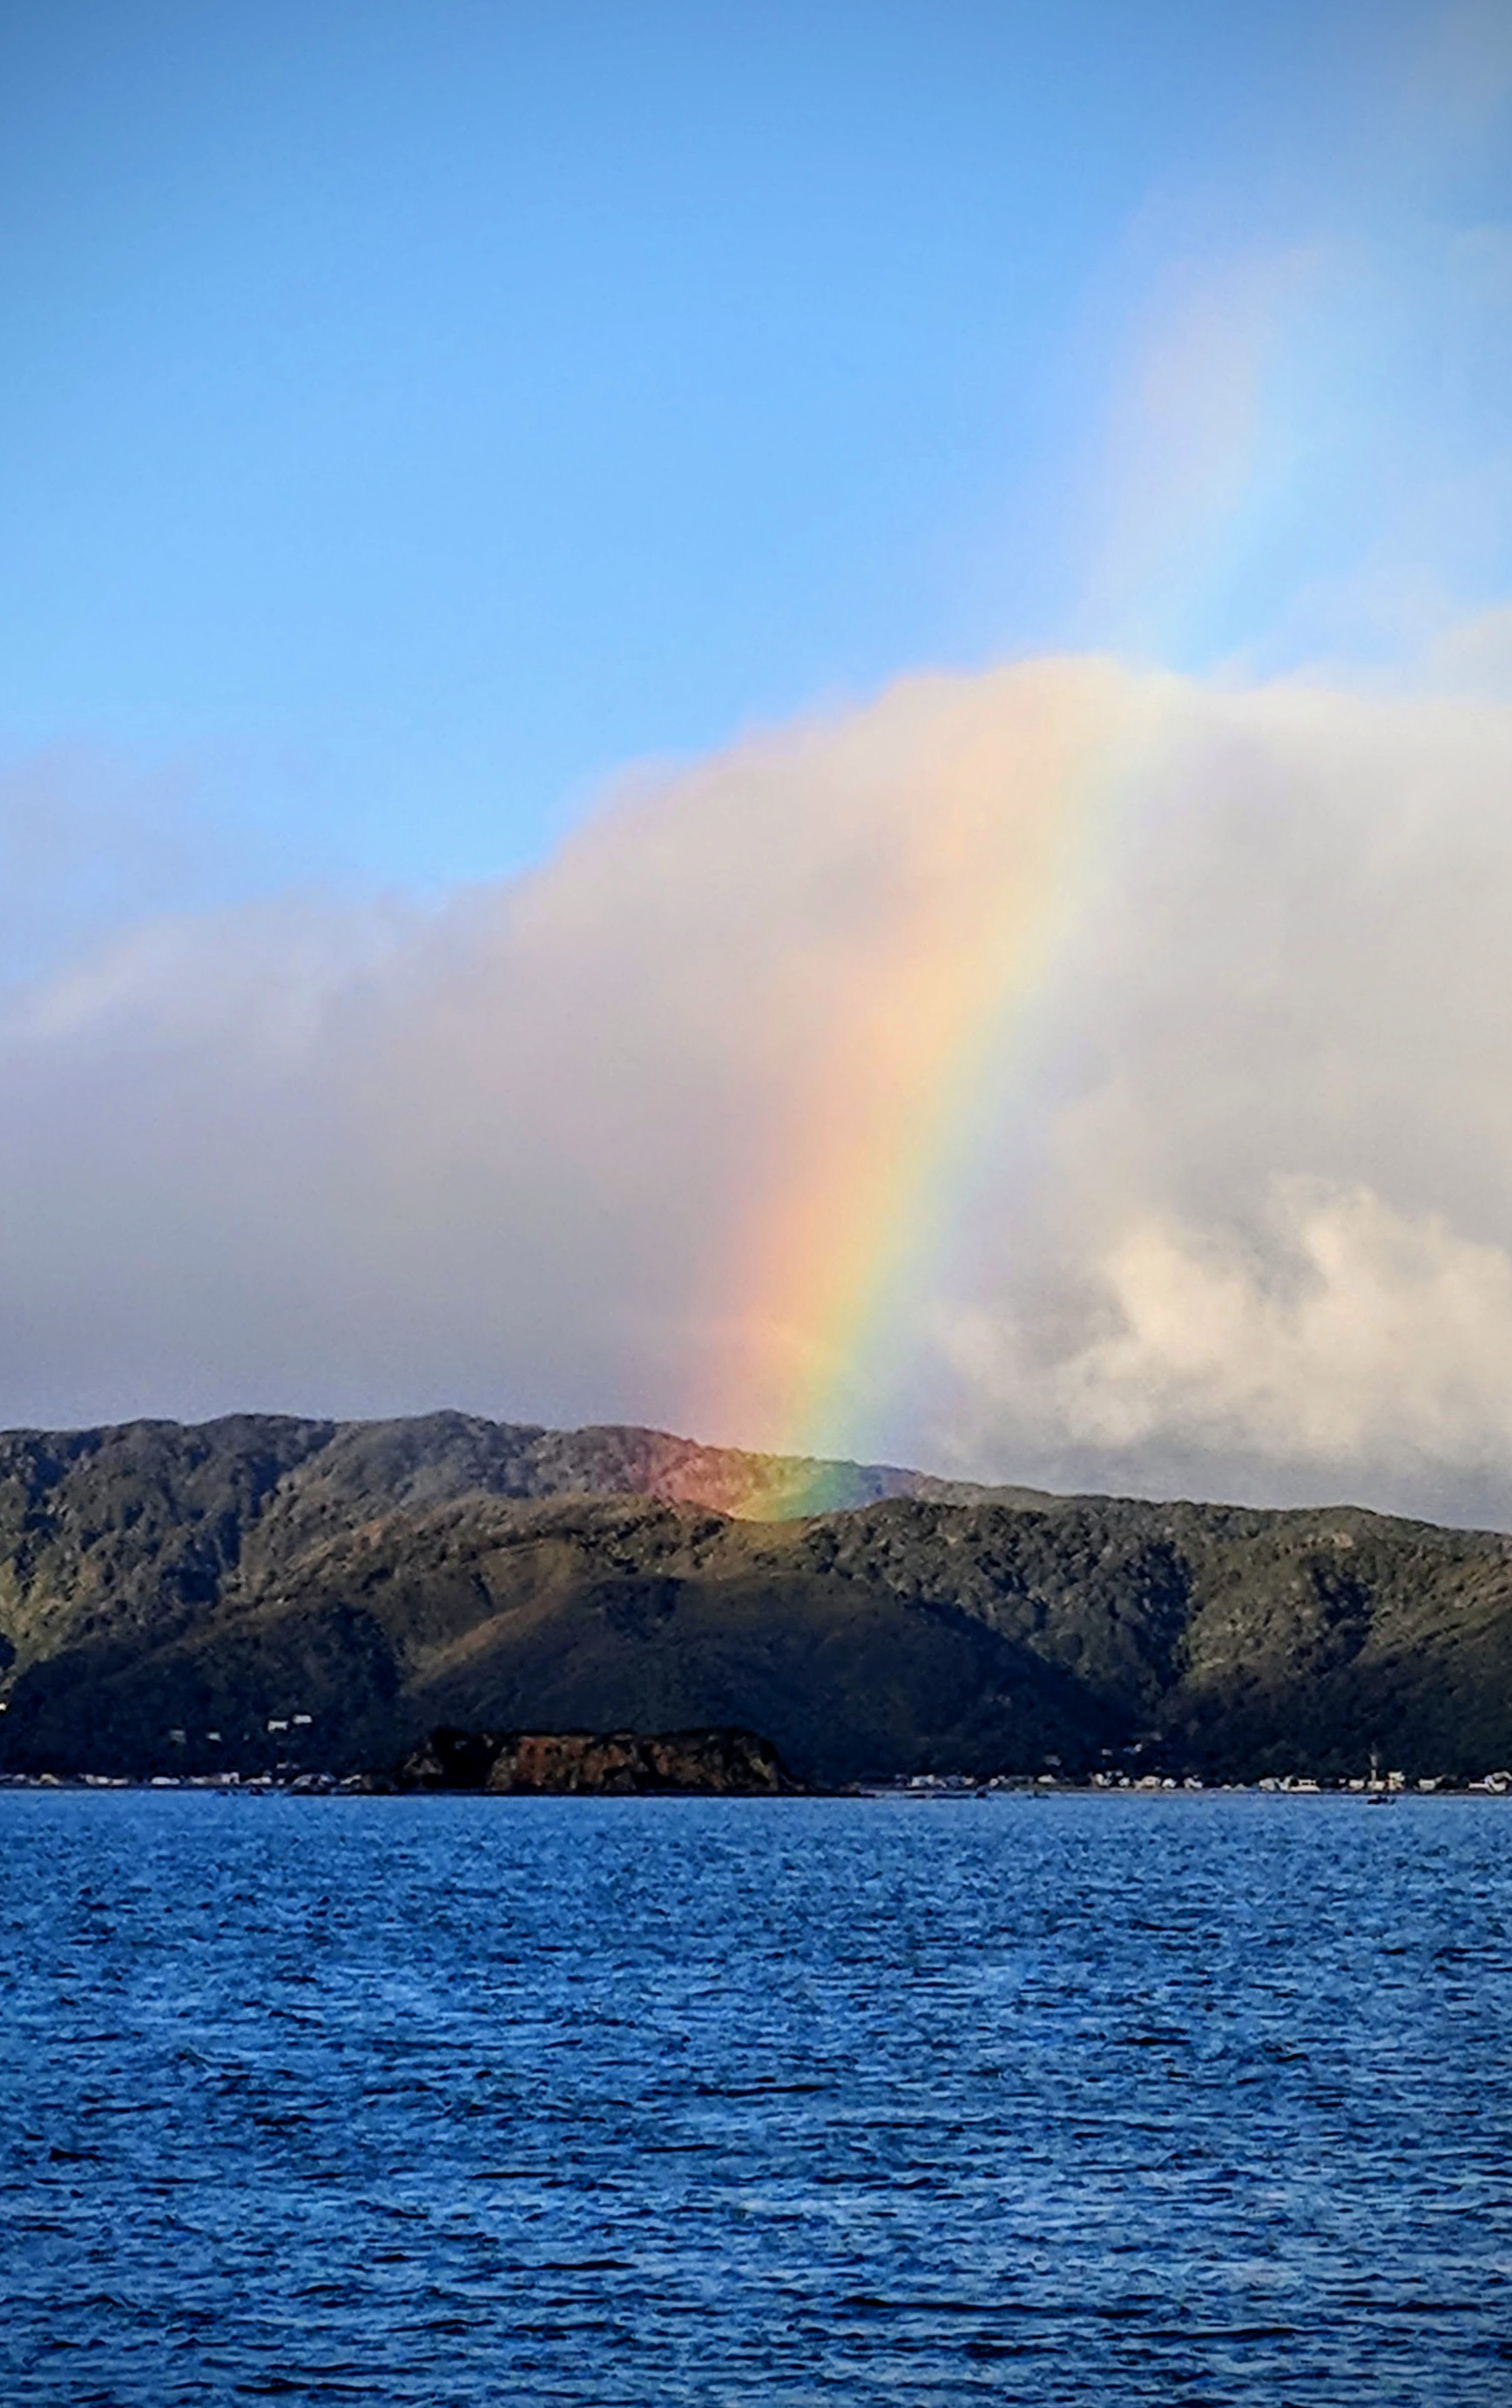 Maupuia hills brushed by rainbow colours